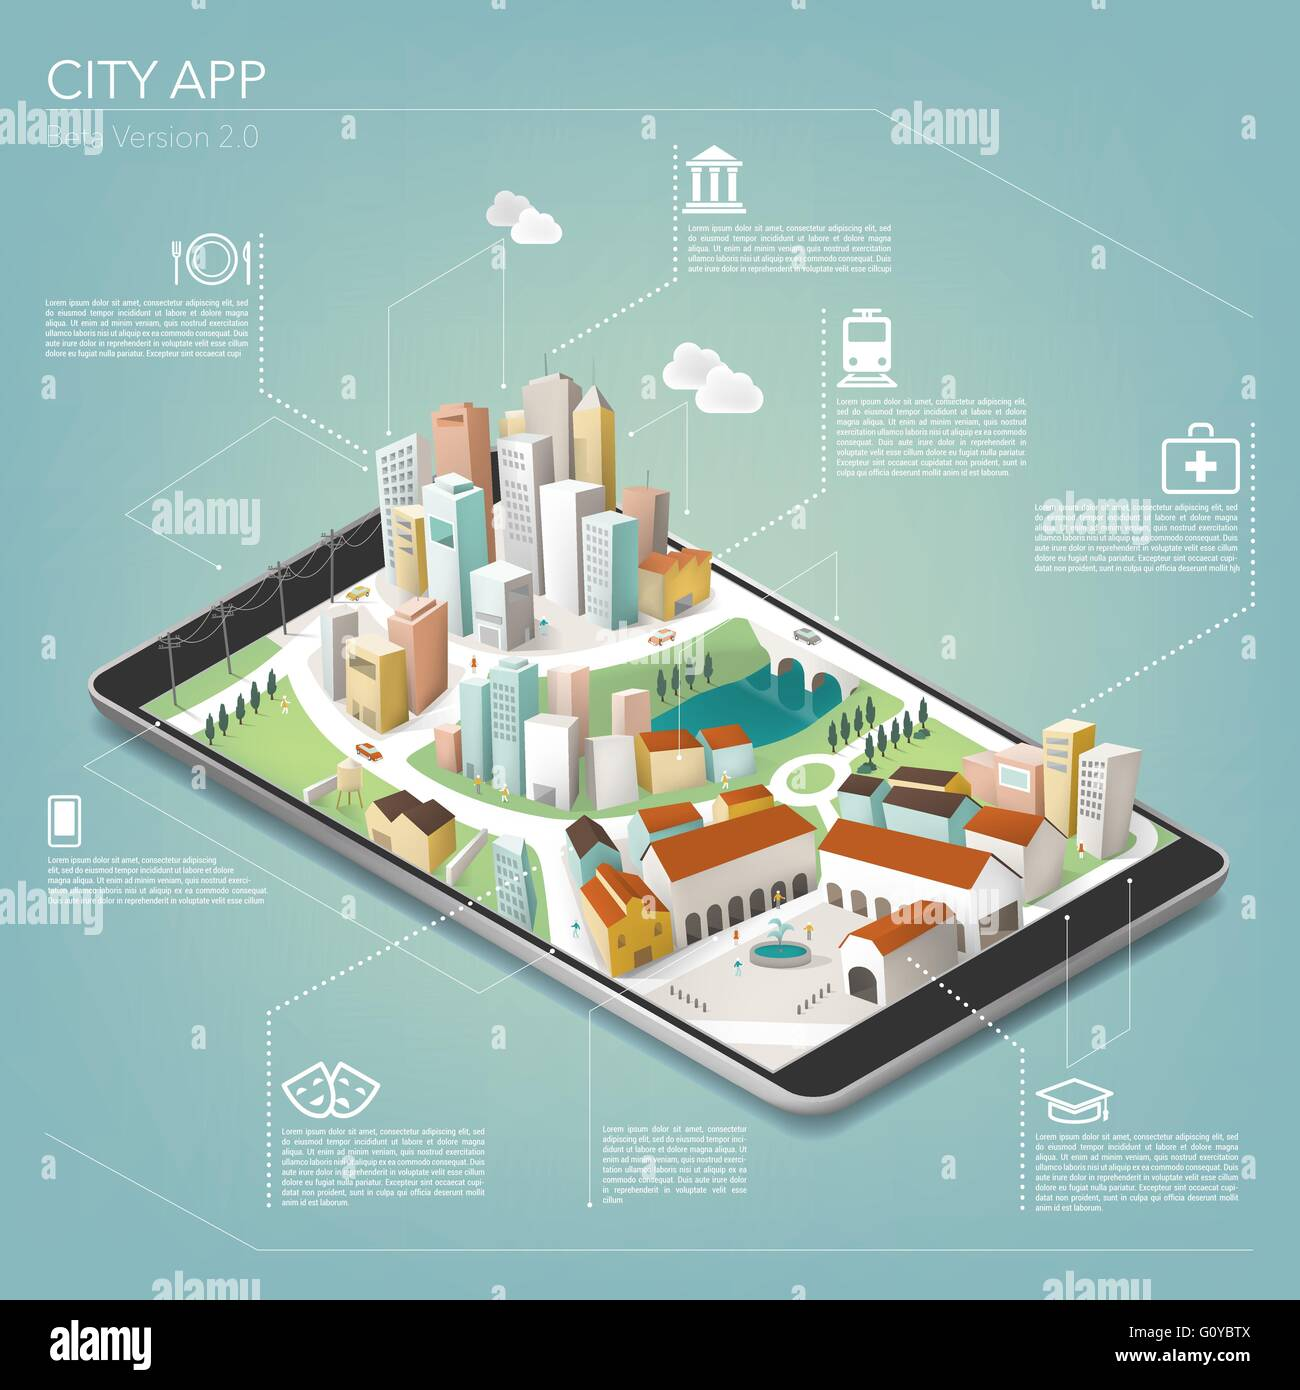 3D city on a mobile app with text and icons, mobile and augmented reality concept - Stock Vector